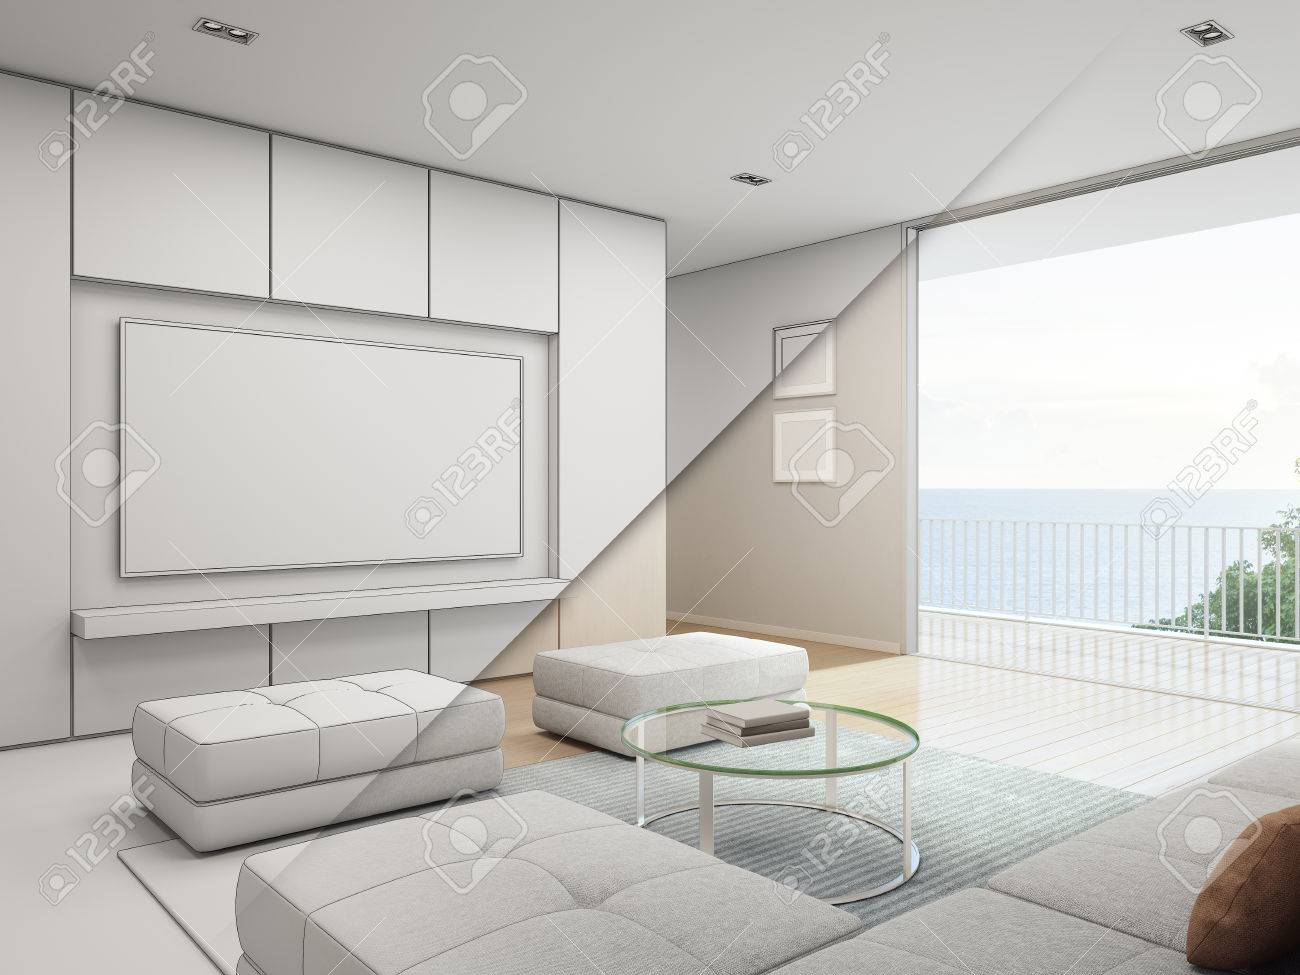 Sea View Living Room With Balcony In Luxury Beach House, Sketch ...